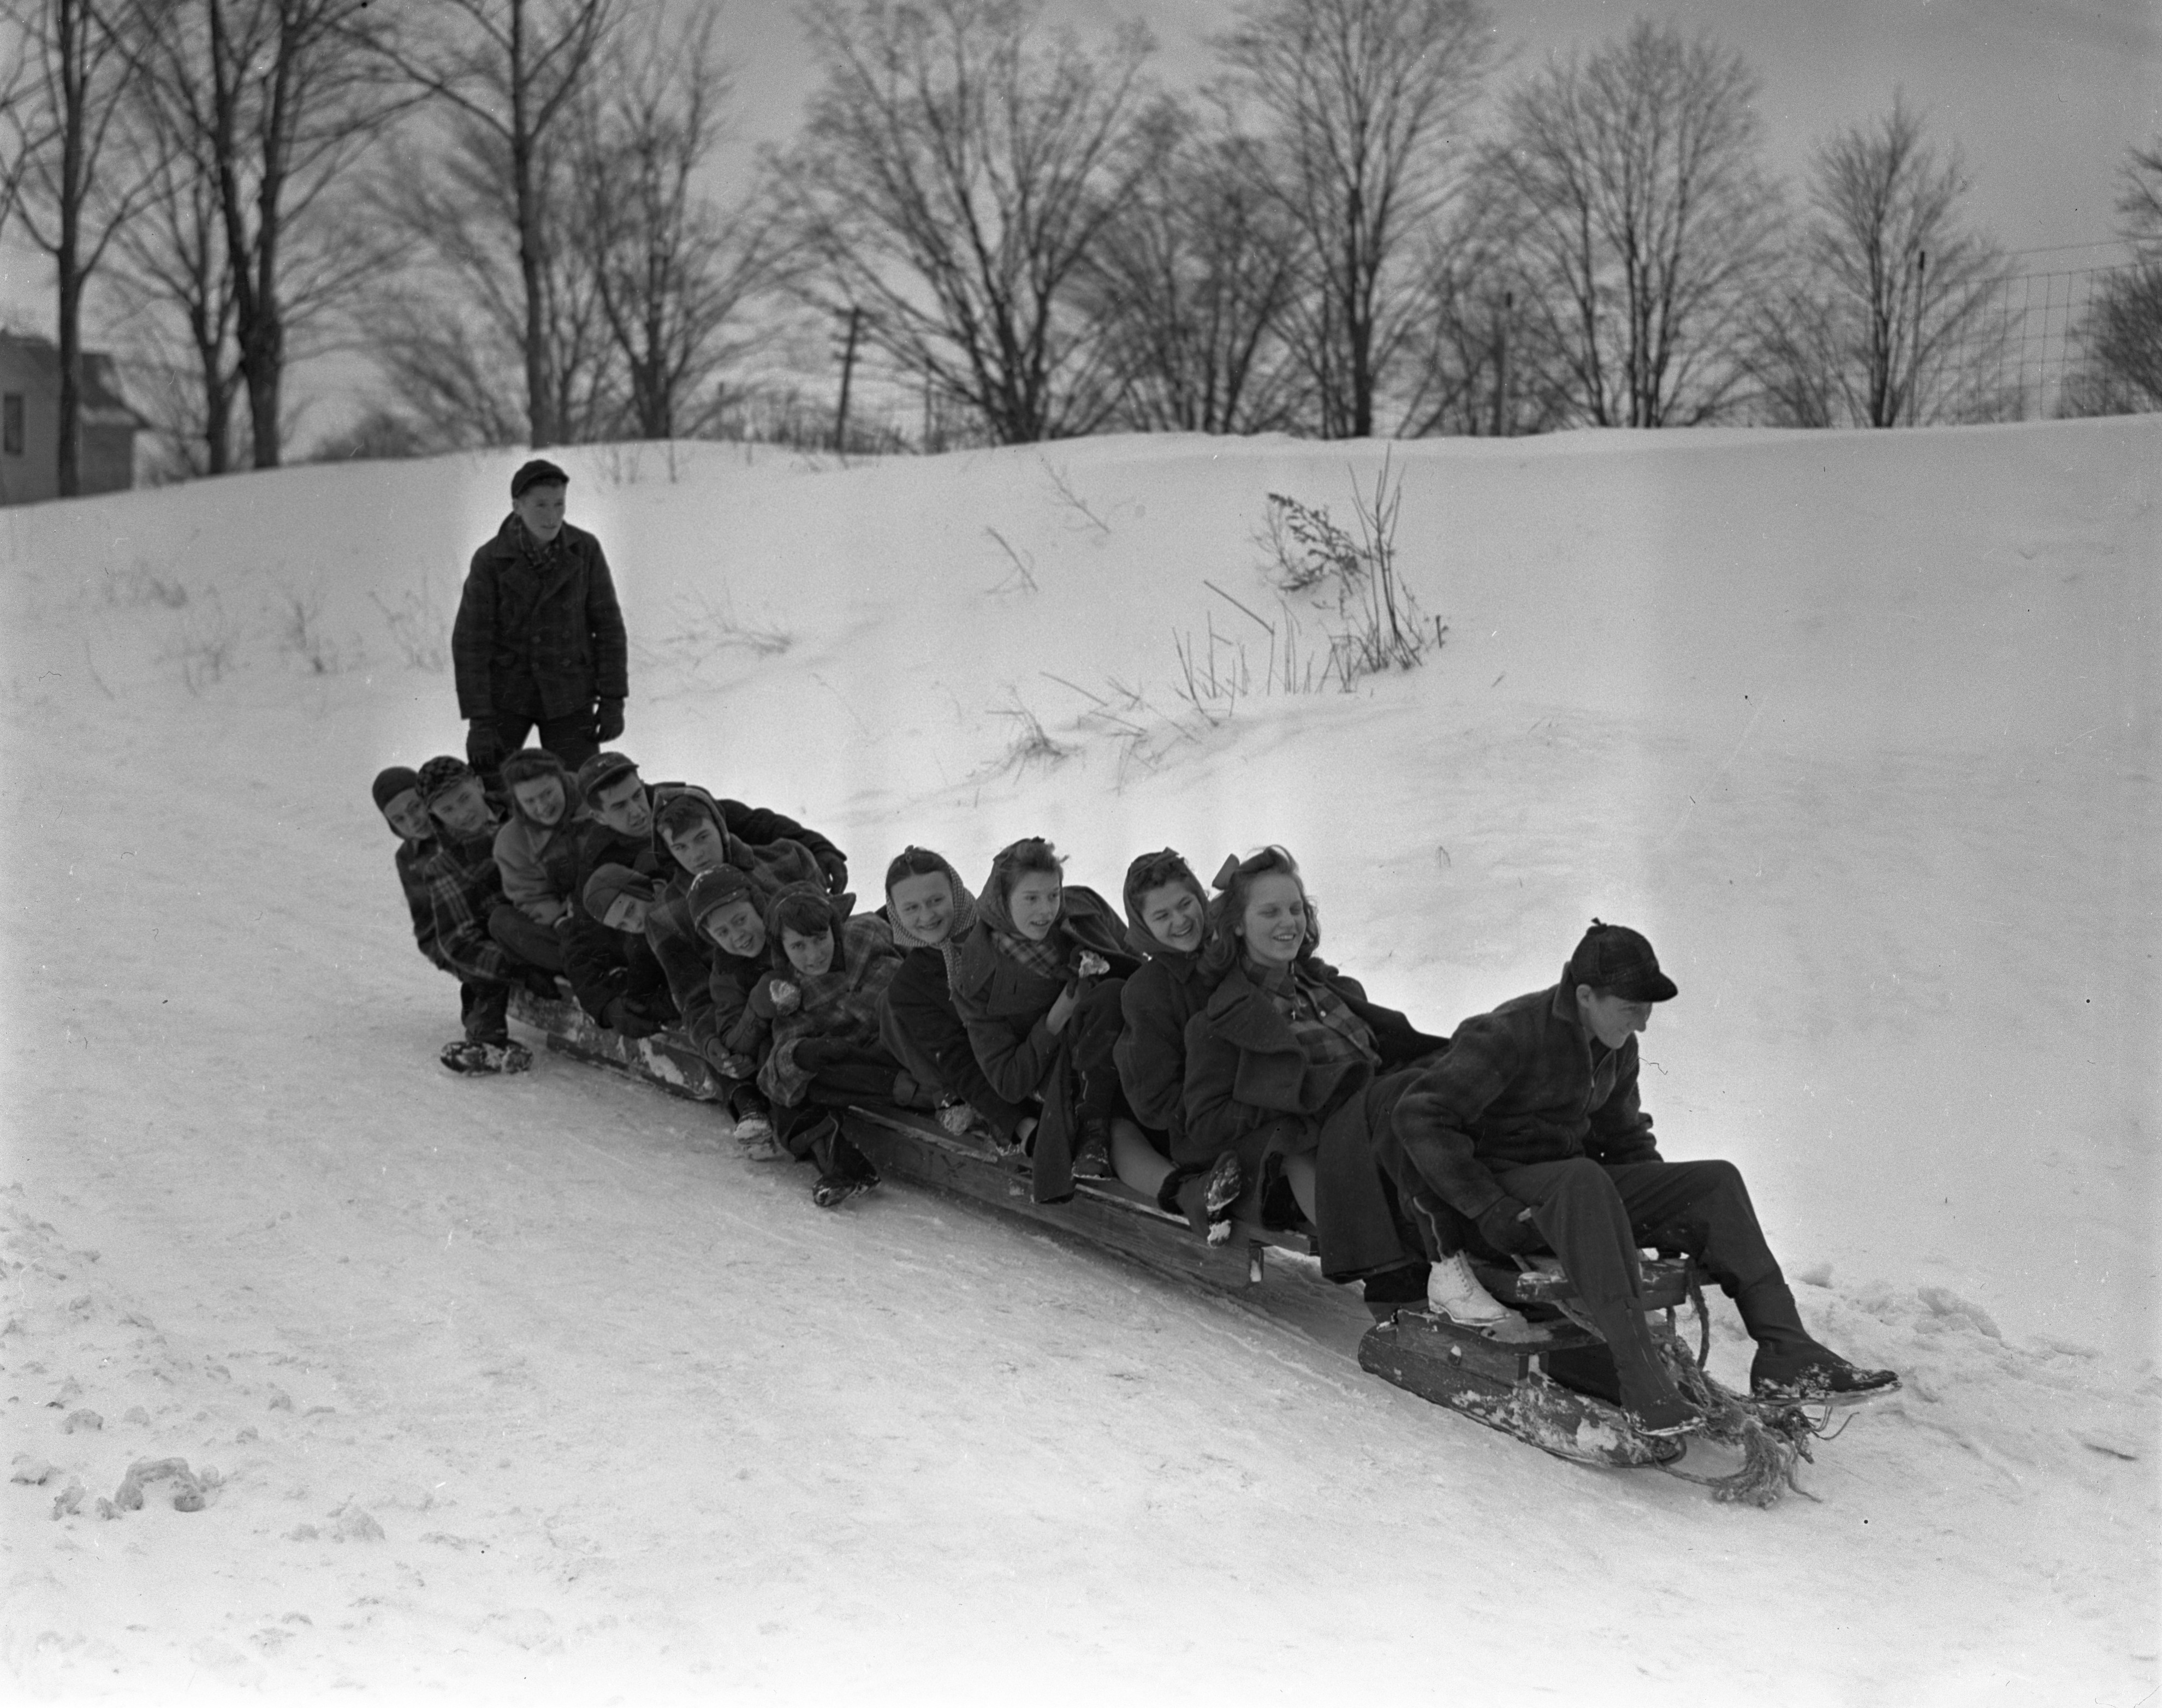 Overloaded Bobsled Preparing For Descent In Charlevoix, February 1940 image